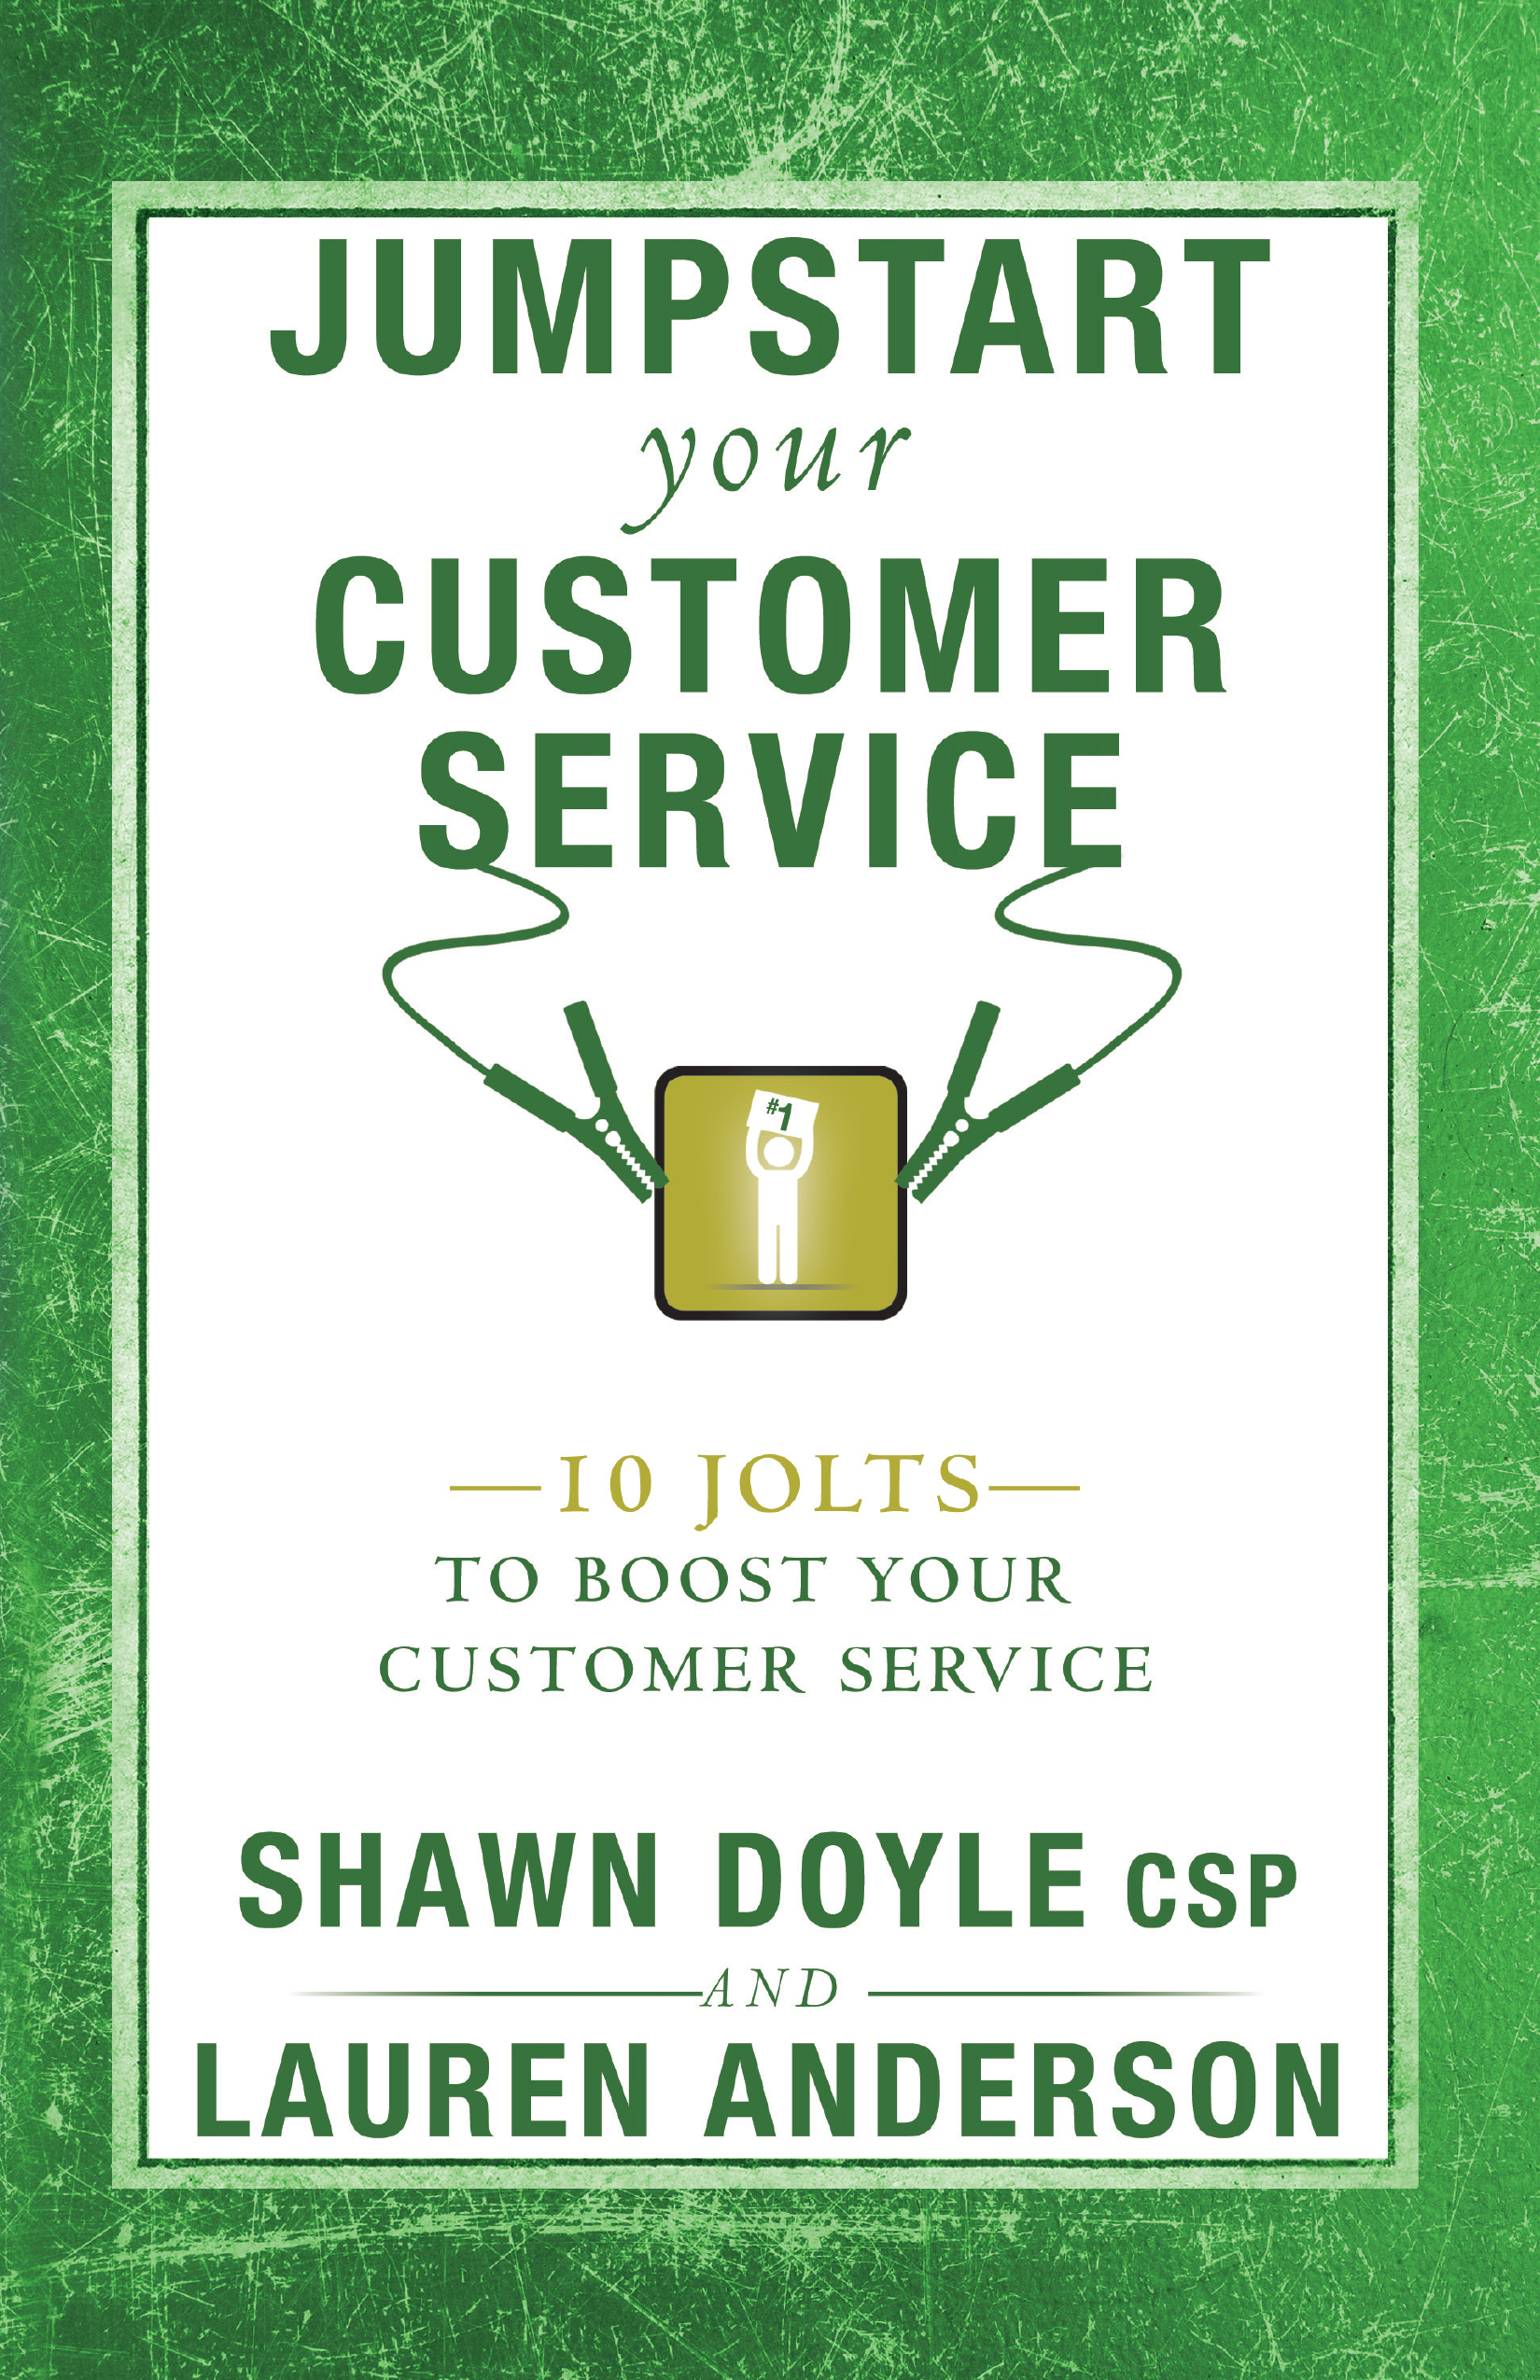 Jumpstart Your Customer Service - Shawn Doyle CSP and Lauren Anderson